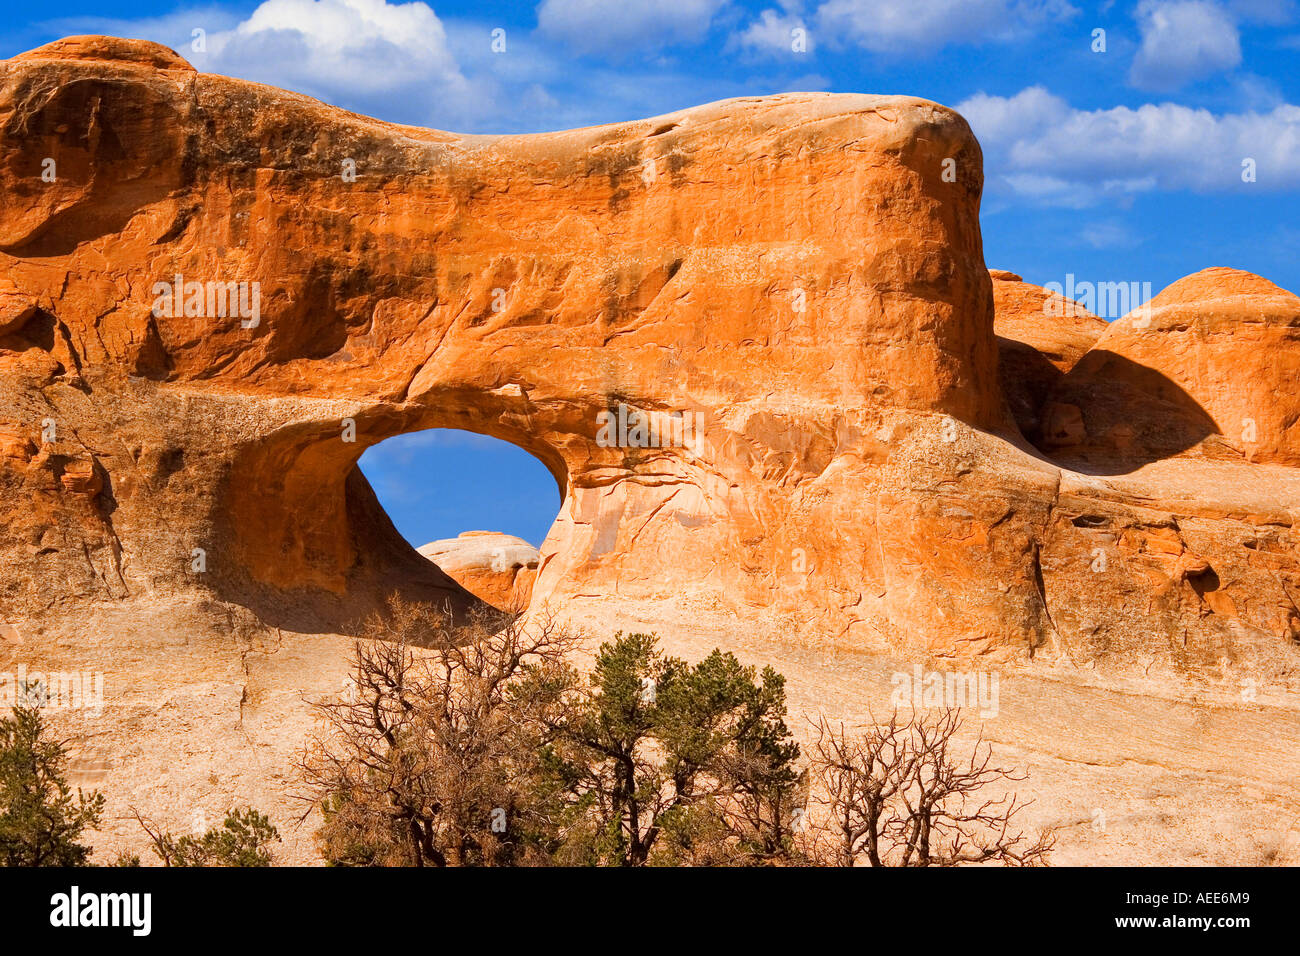 arches national park scenic tunnel stockfotos arches national park scenic tunnel bilder alamy. Black Bedroom Furniture Sets. Home Design Ideas